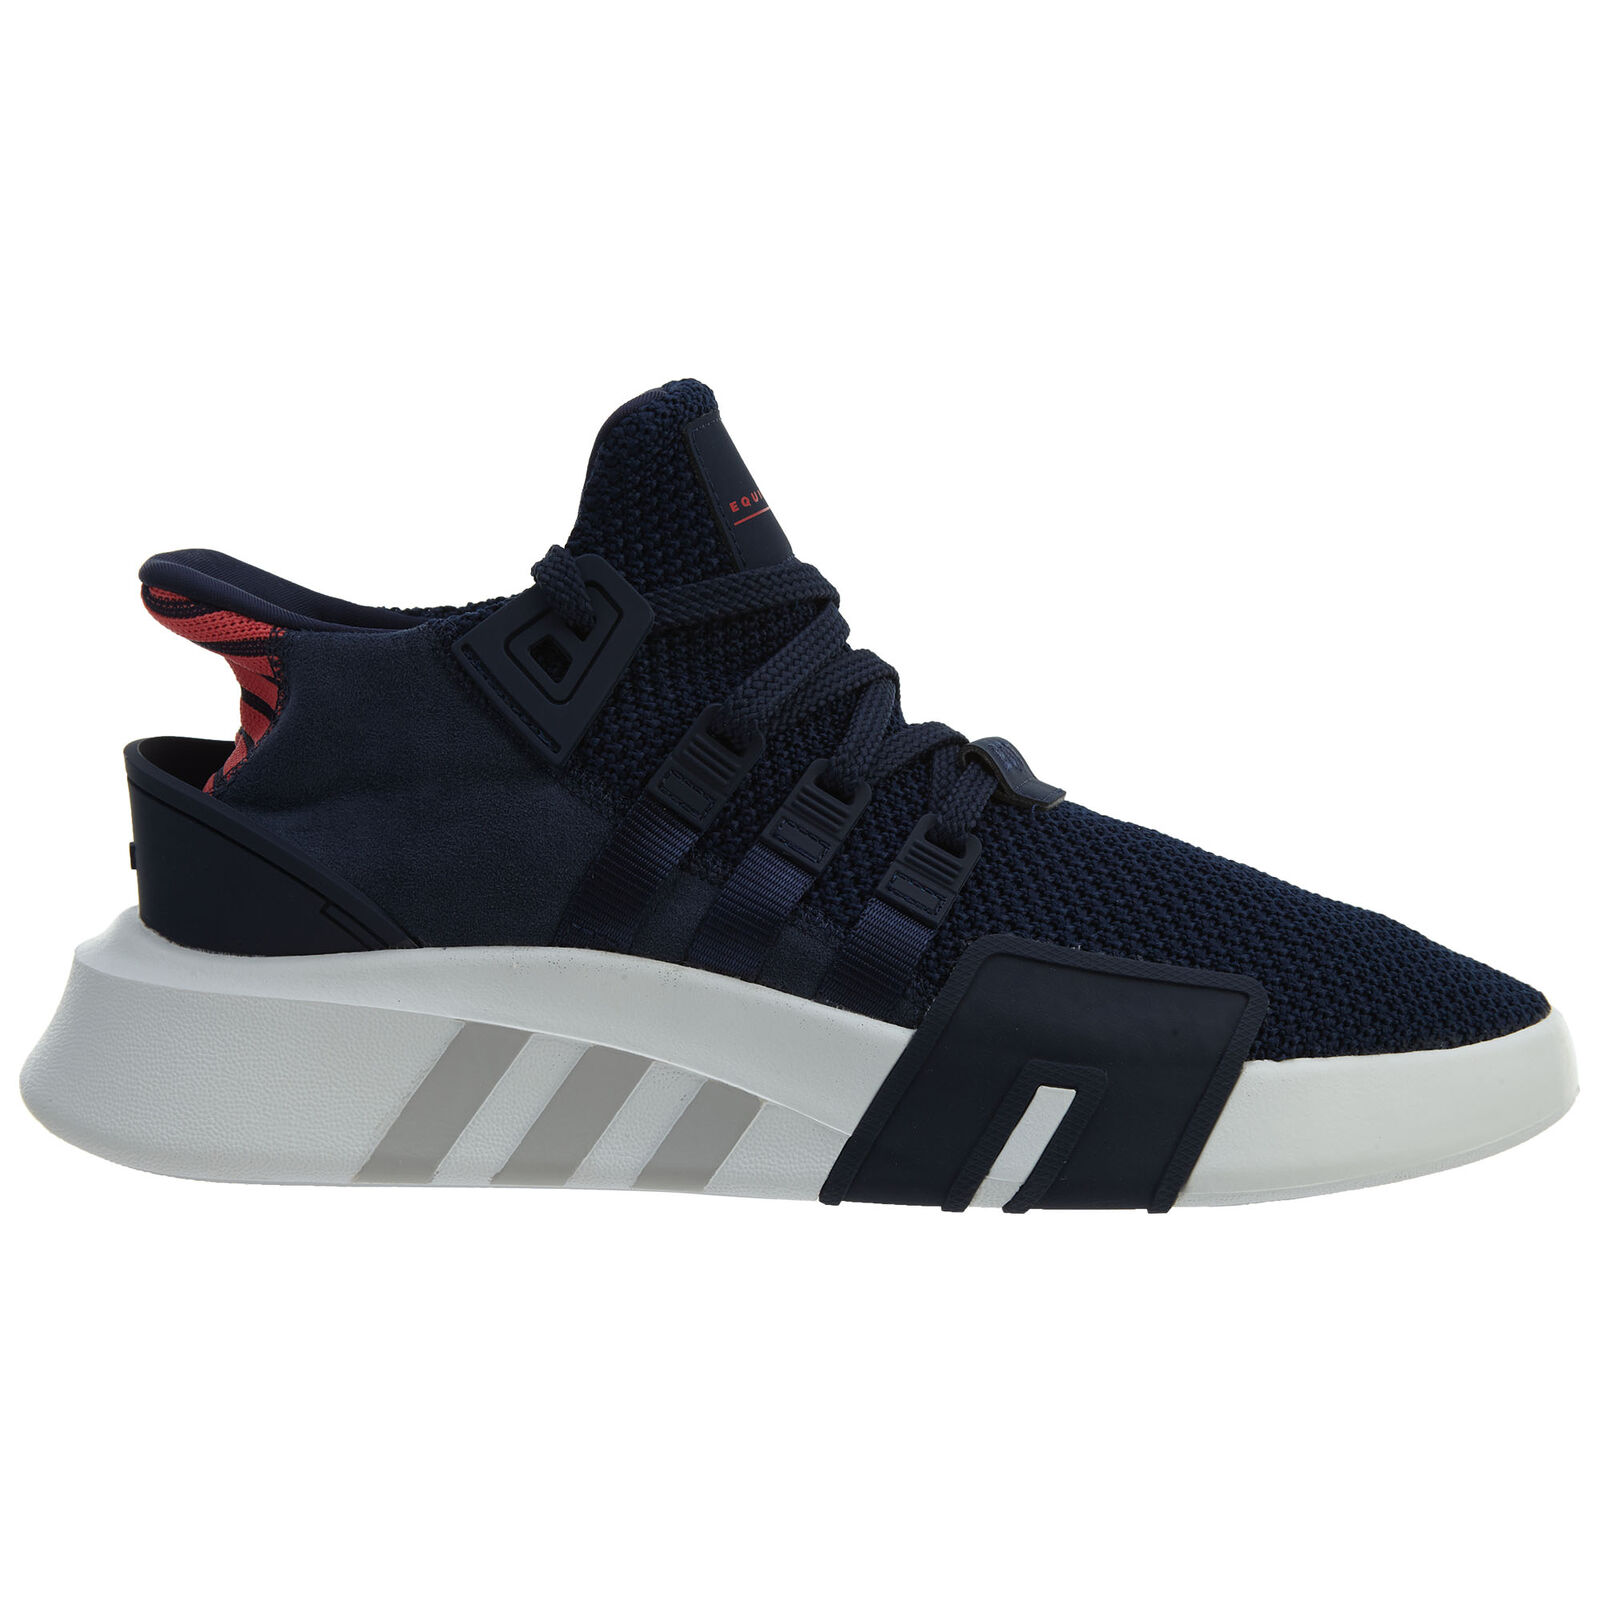 Adidas EQT Bask ADV Mens CQ2996 Navy Coral Knit Suede Athletic Shoes Comfortable